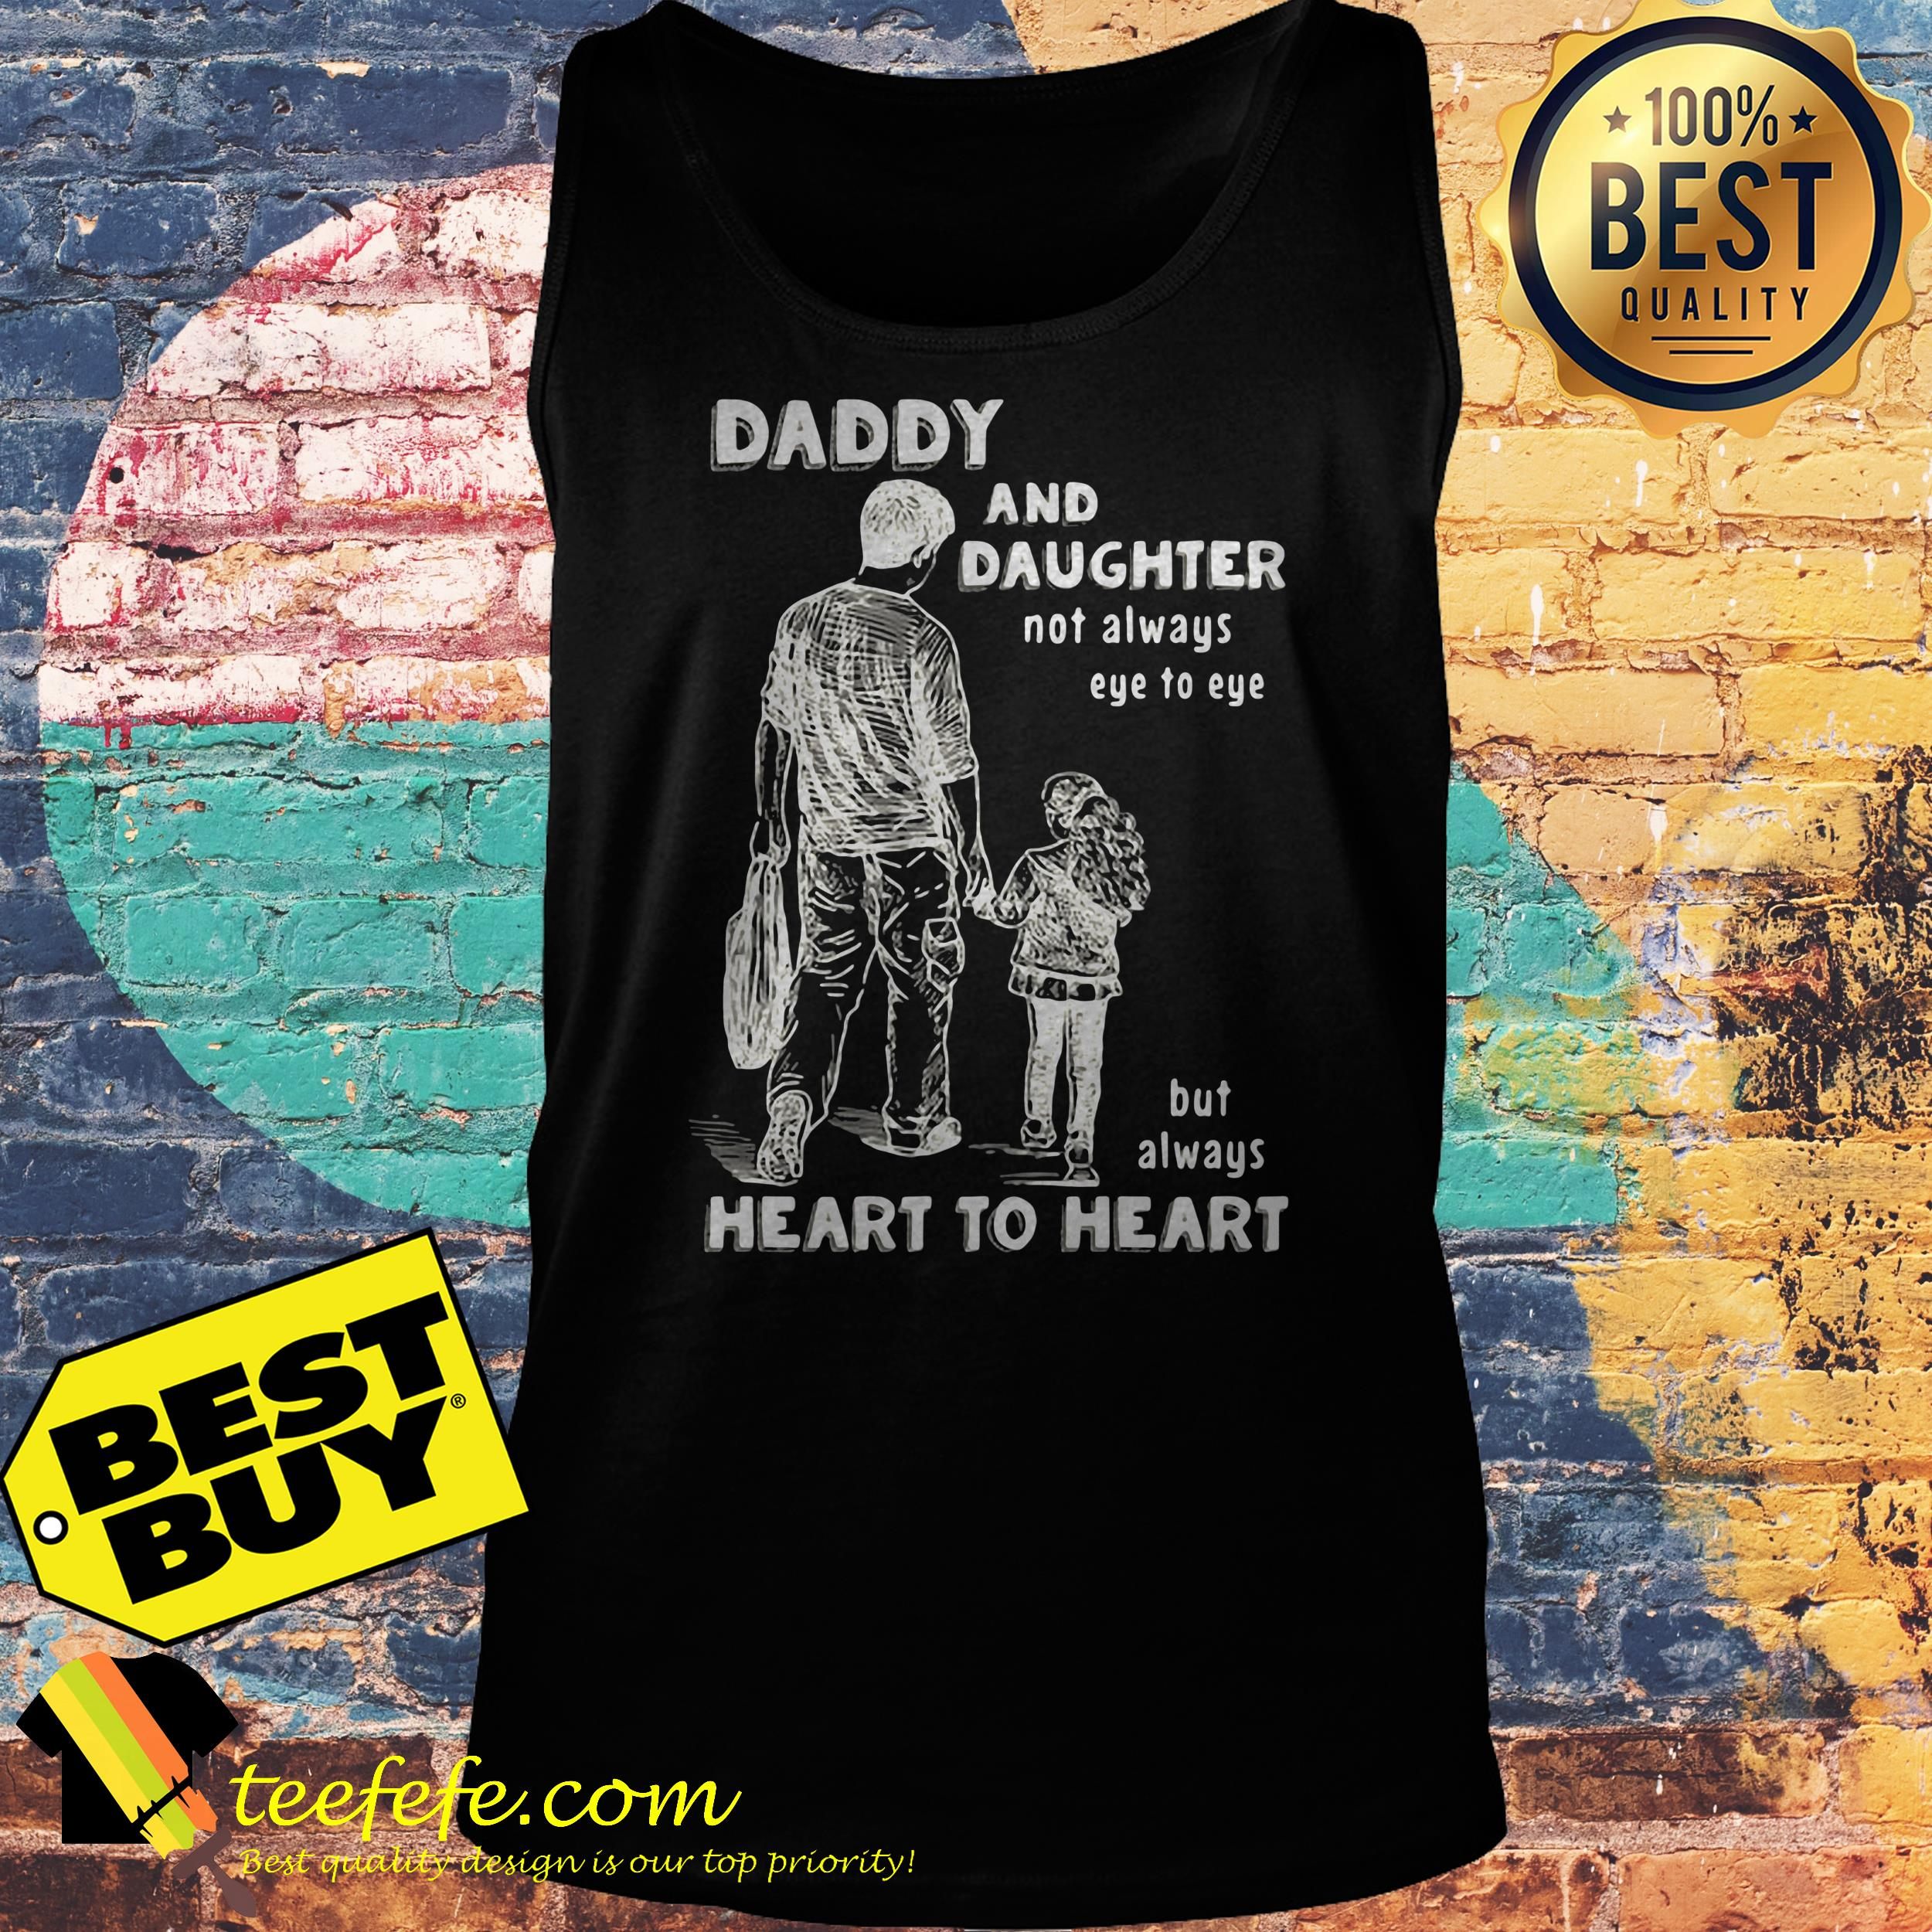 Daddy and daughter not always eye to eye but always heart to heart tank top